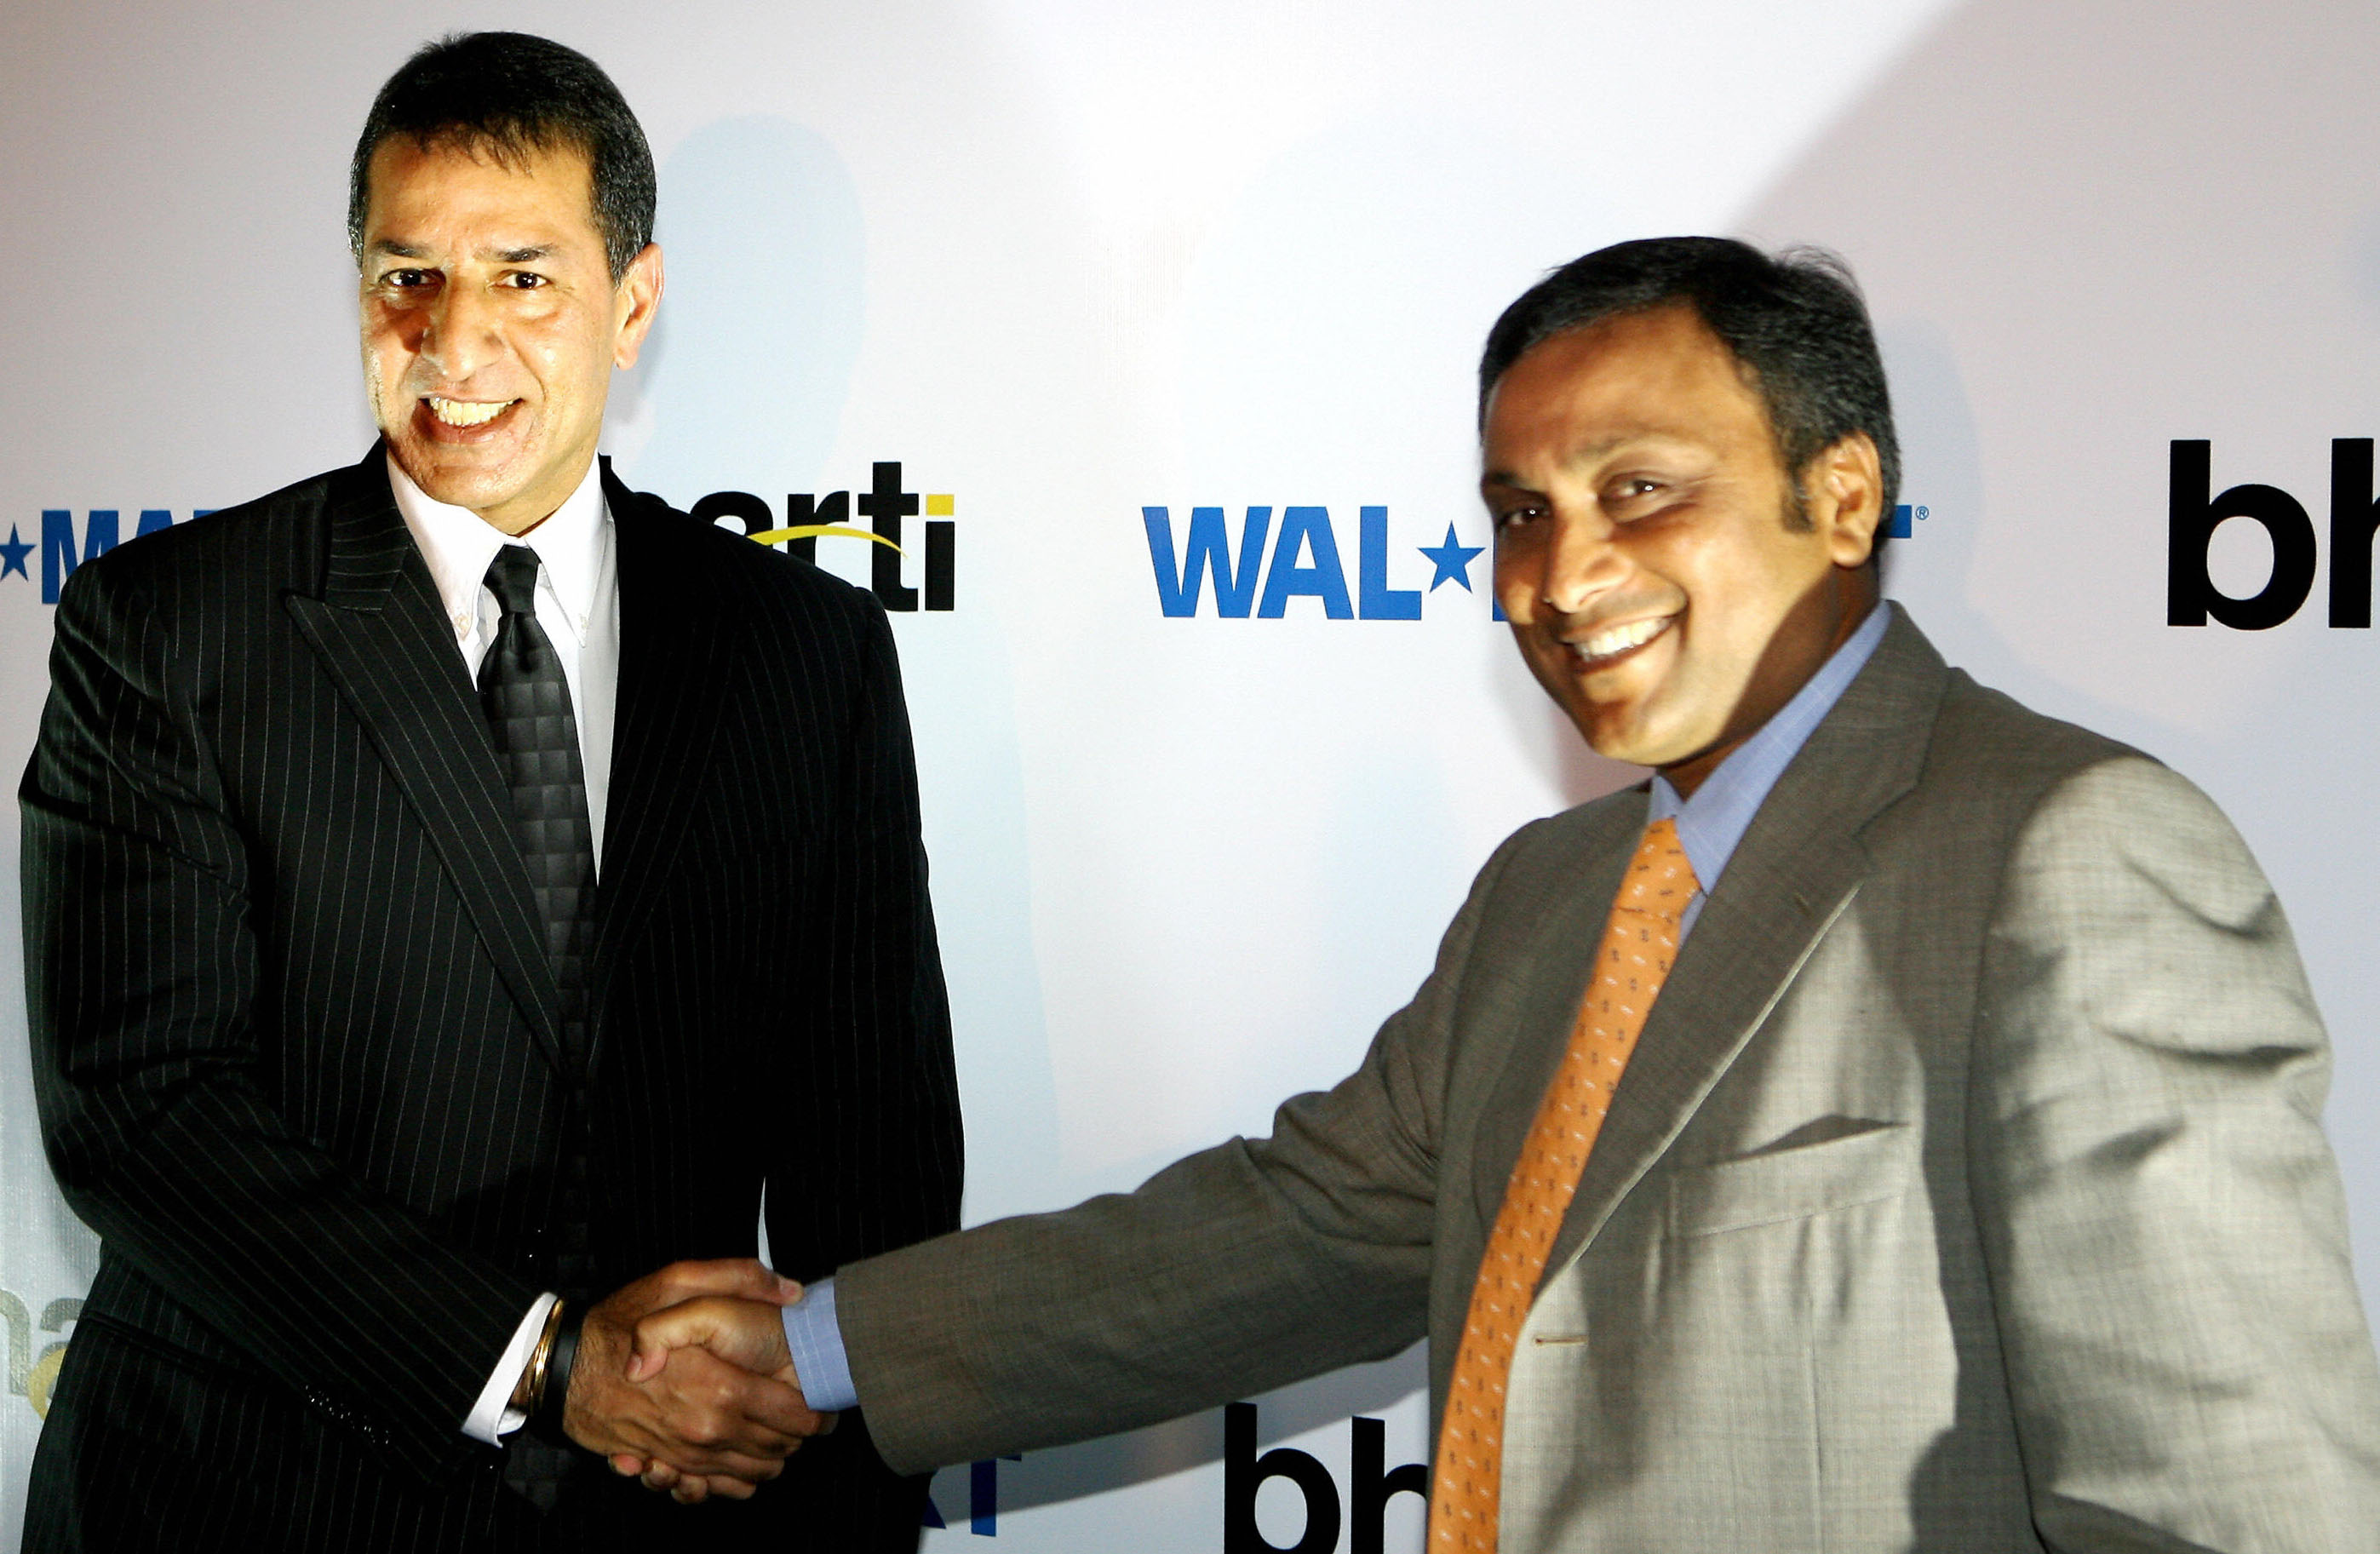 (Getty Images) Managing Director of India's Bharti Enterprises Rajan Bharti Mittal (L) shakes hands with President of US Wal-Mart's operations in India, Raj Jain during a press conference in New Delhi, 06 August 2007.